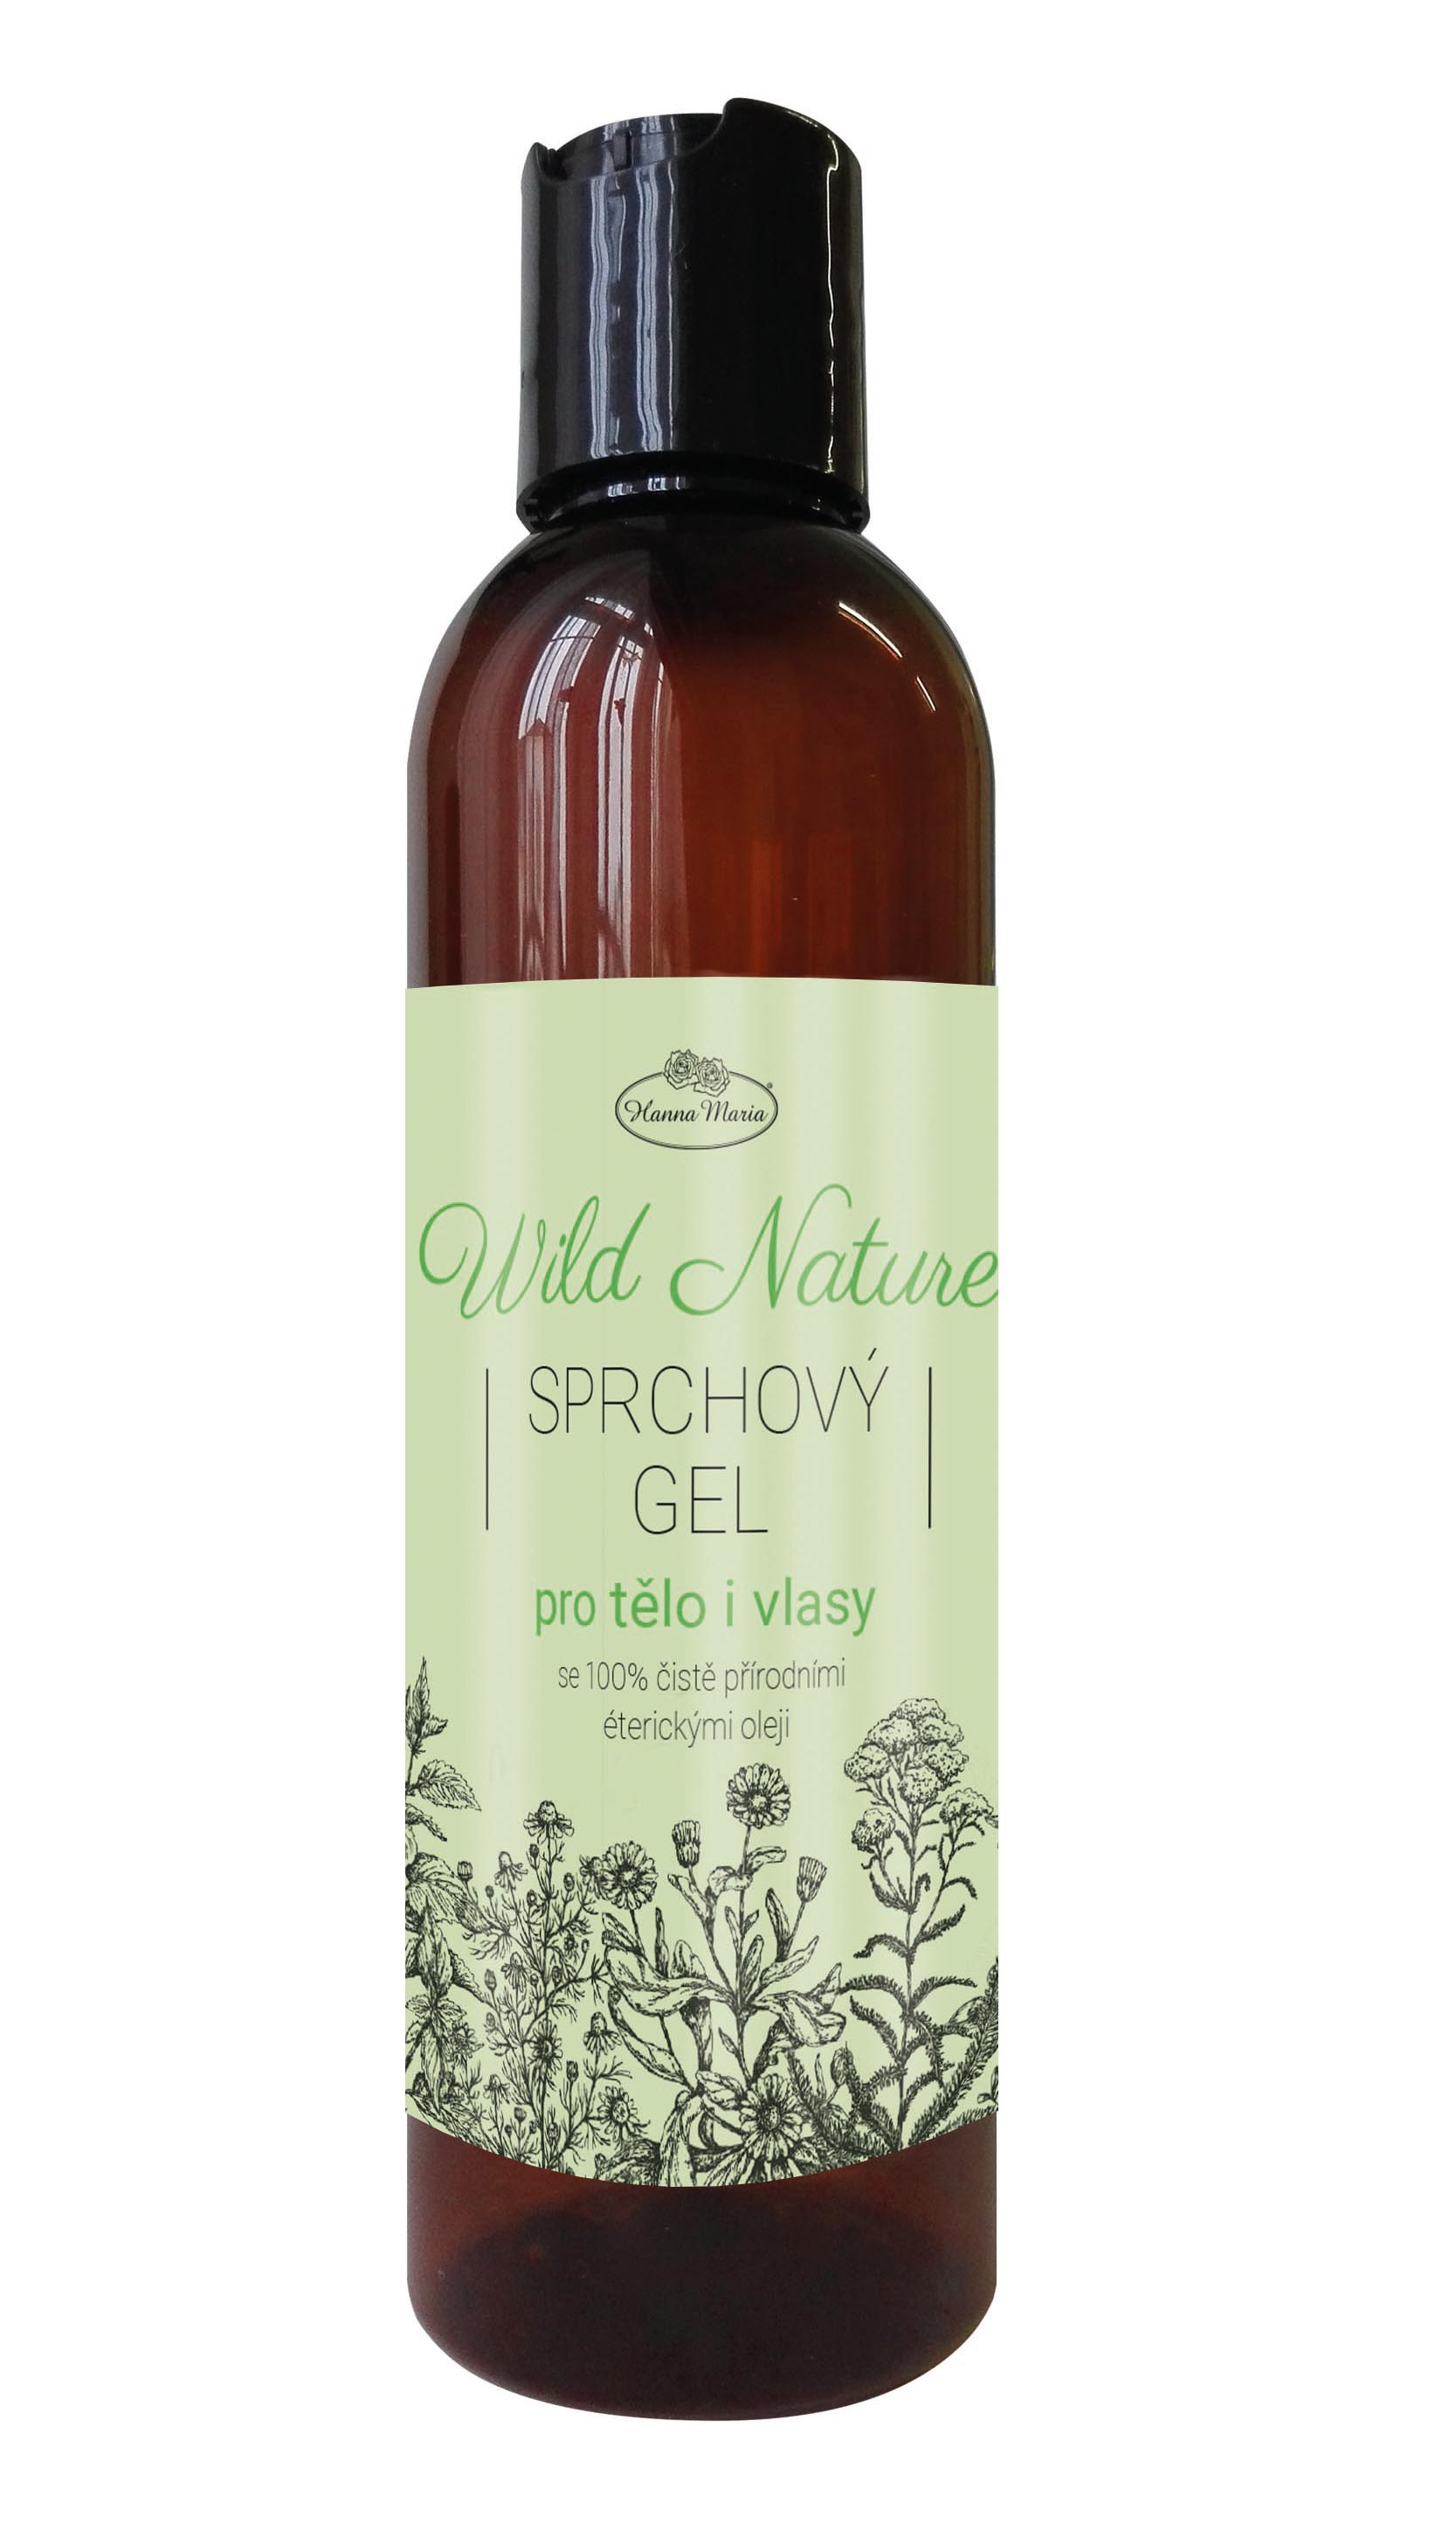 Sprchový gel 2v1 WILD NATURE 200 ml